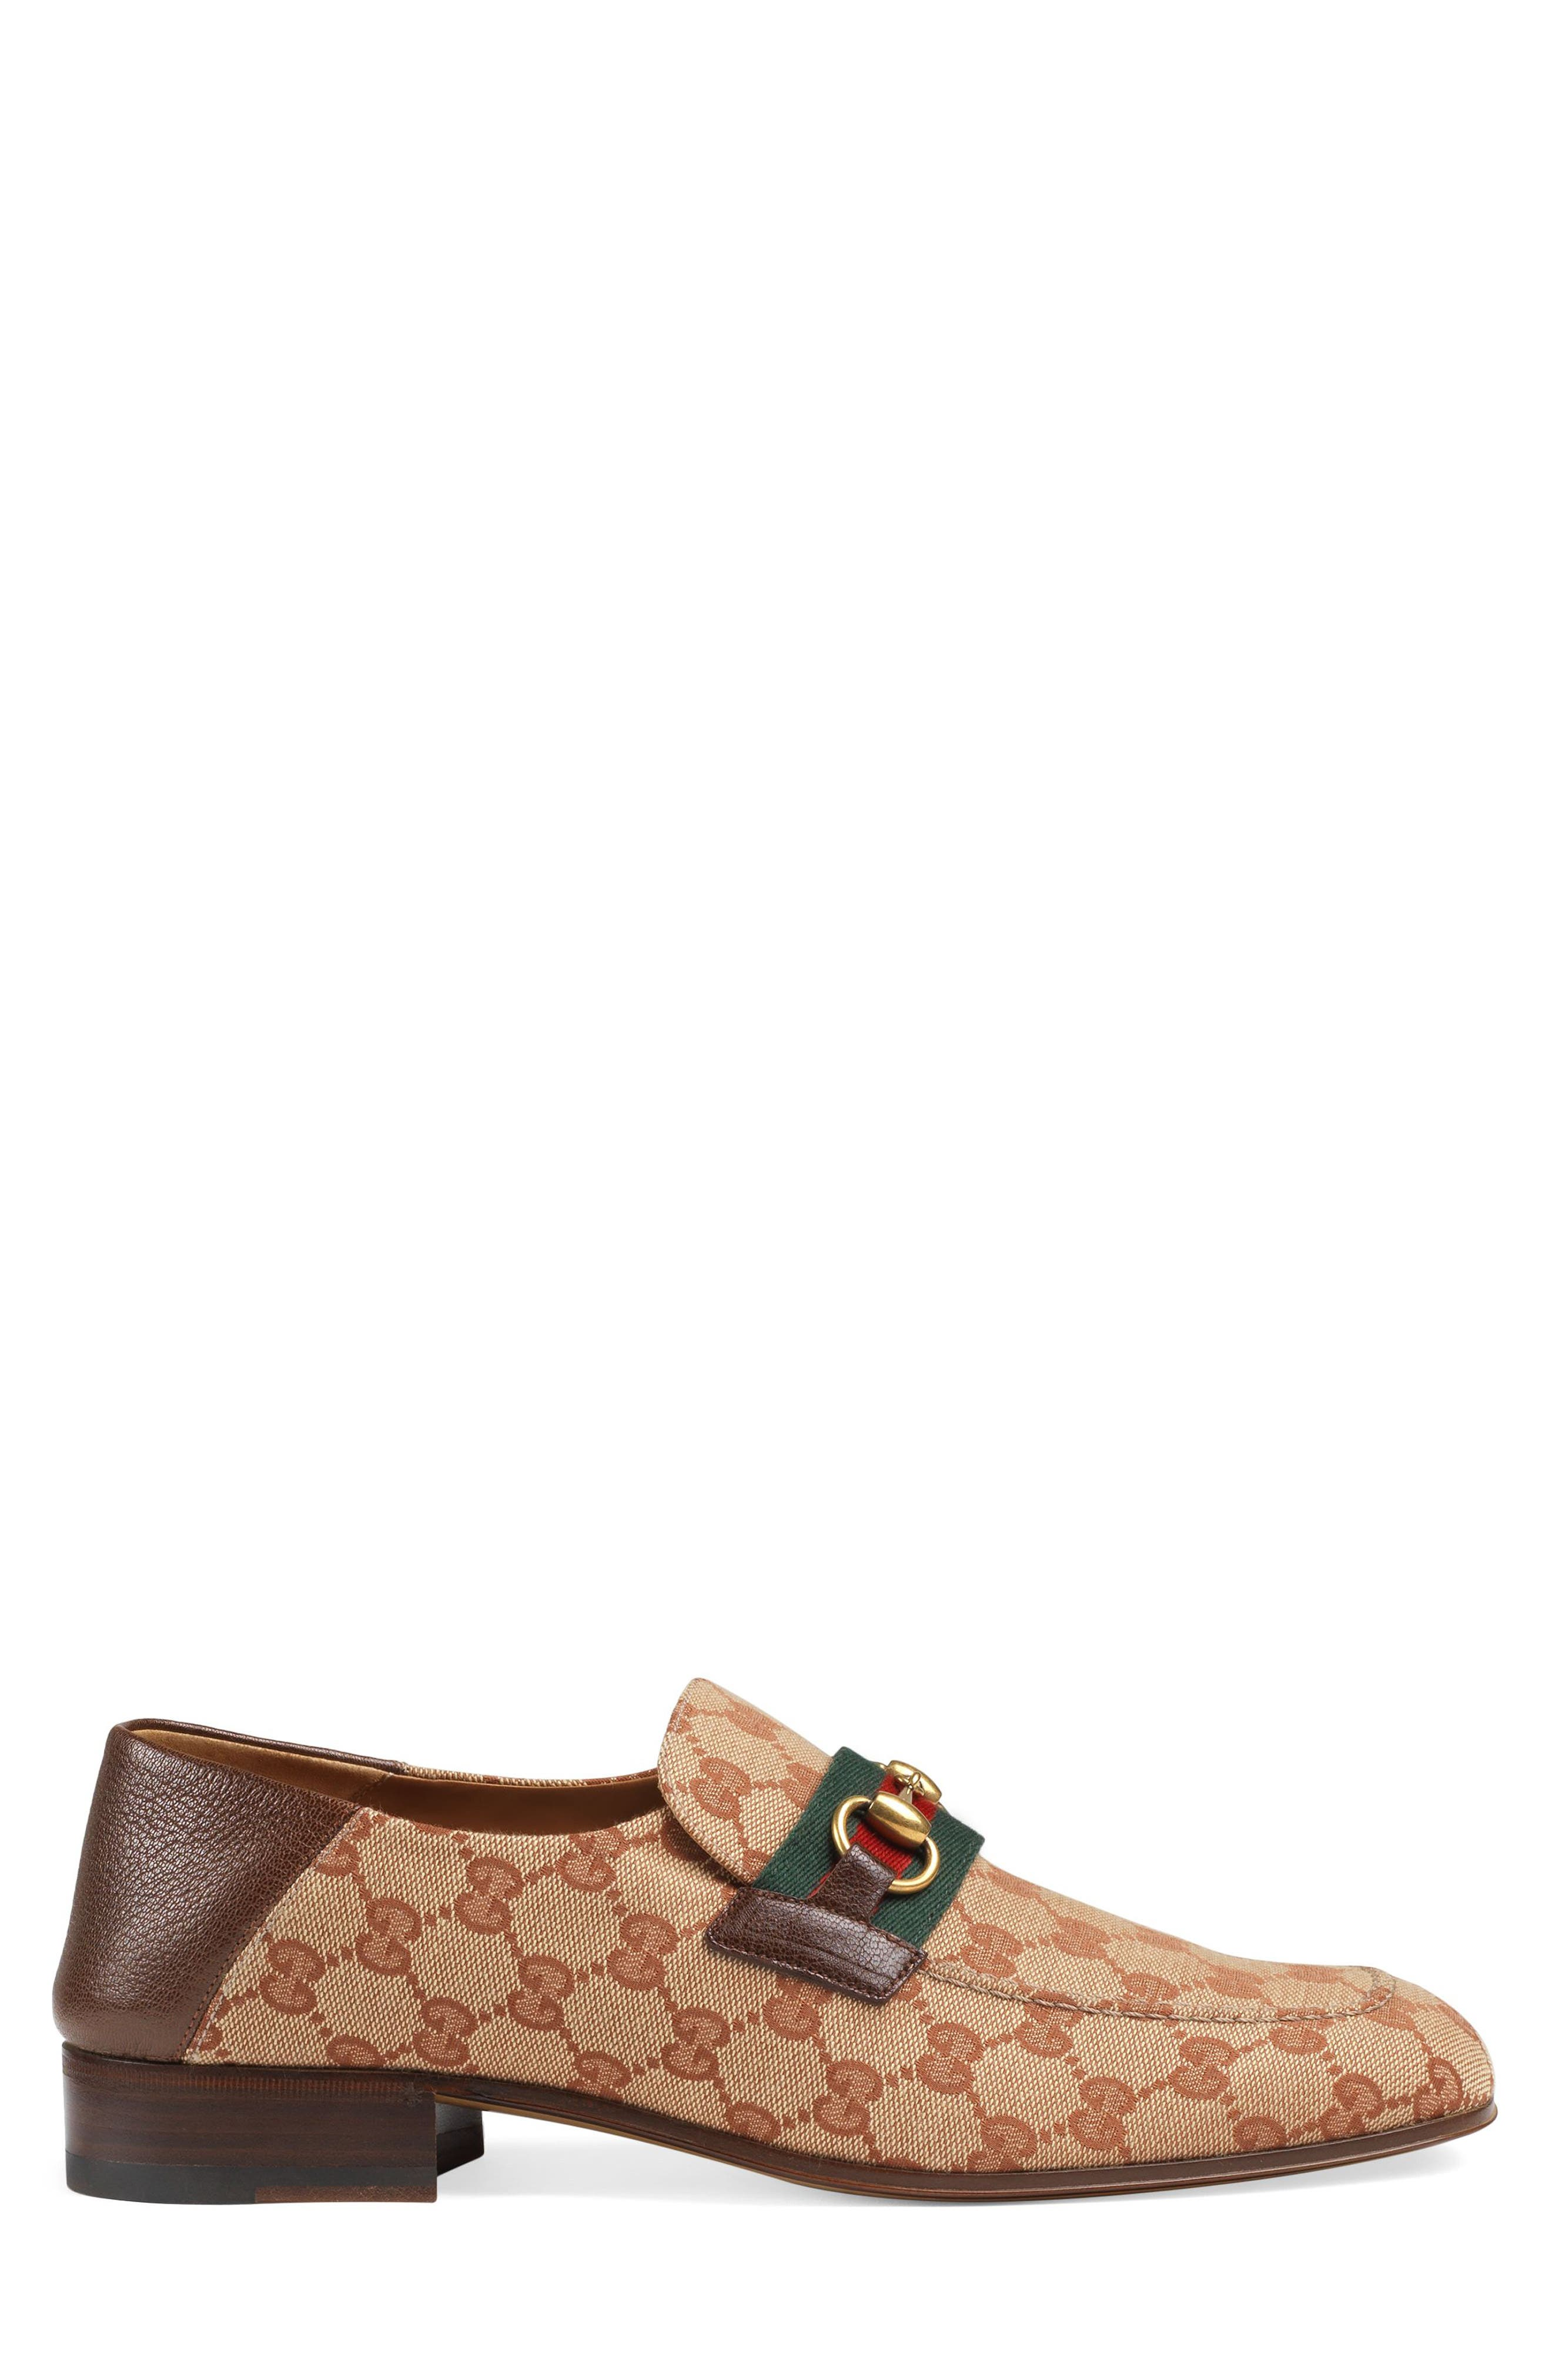 GUCCI,                             Horsebit Collapsible Leather Loafer,                             Alternate thumbnail 3, color,                             BEIGE/ ROSE